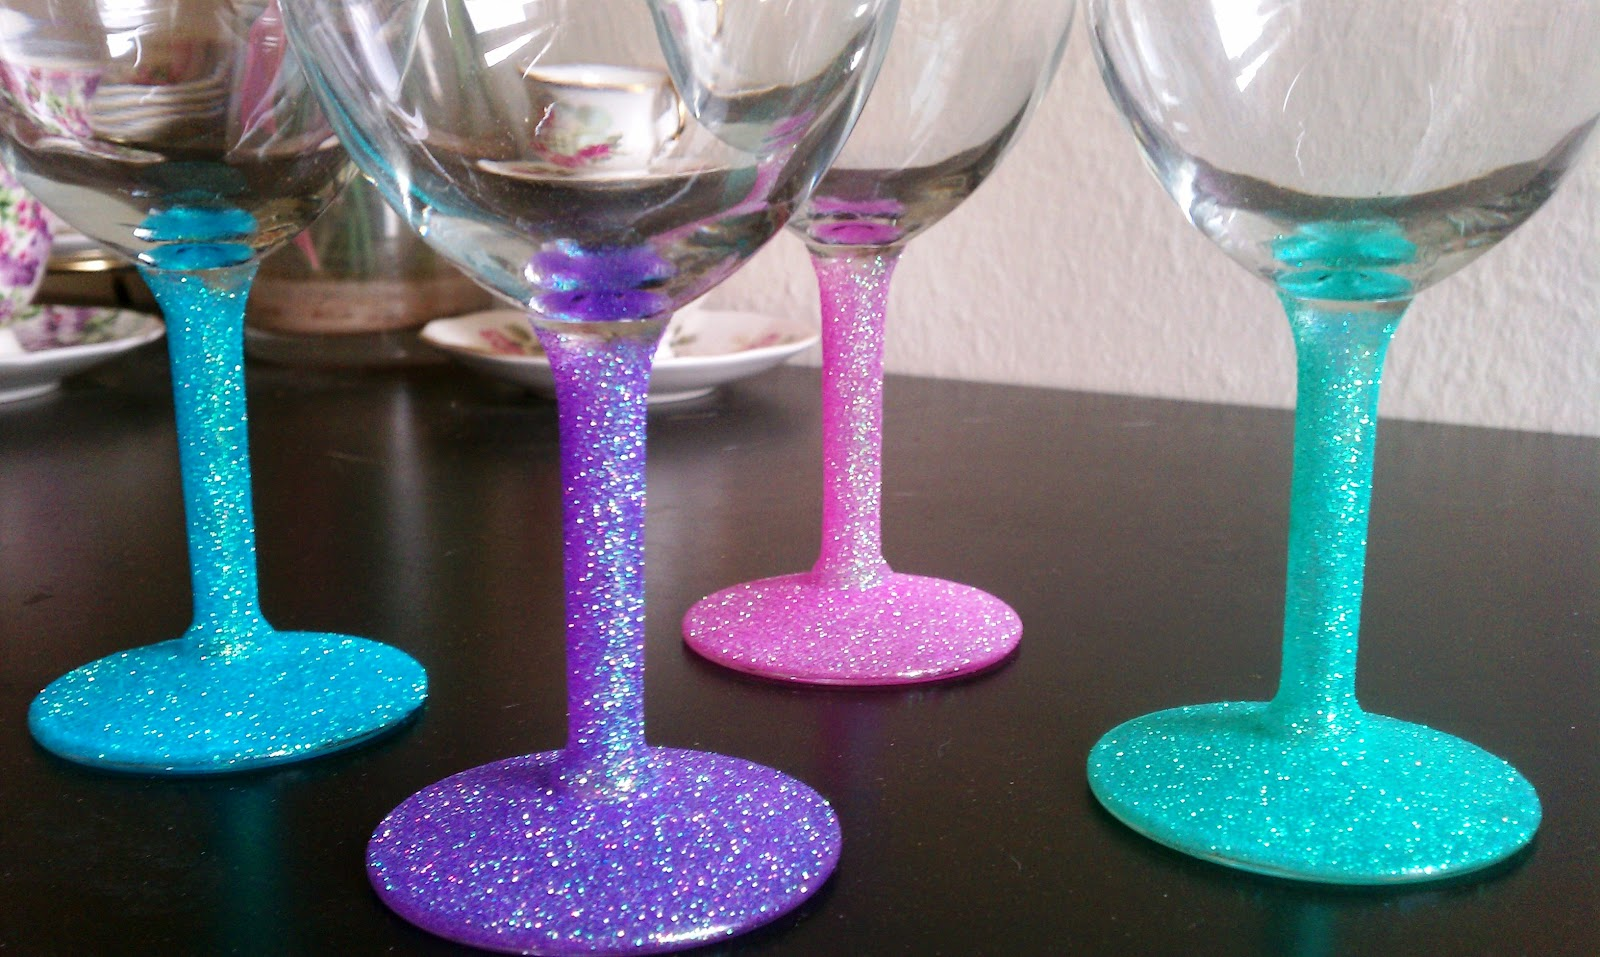 Cupcakes couture diy glitter wine glasses How to make wine glasses sparkle